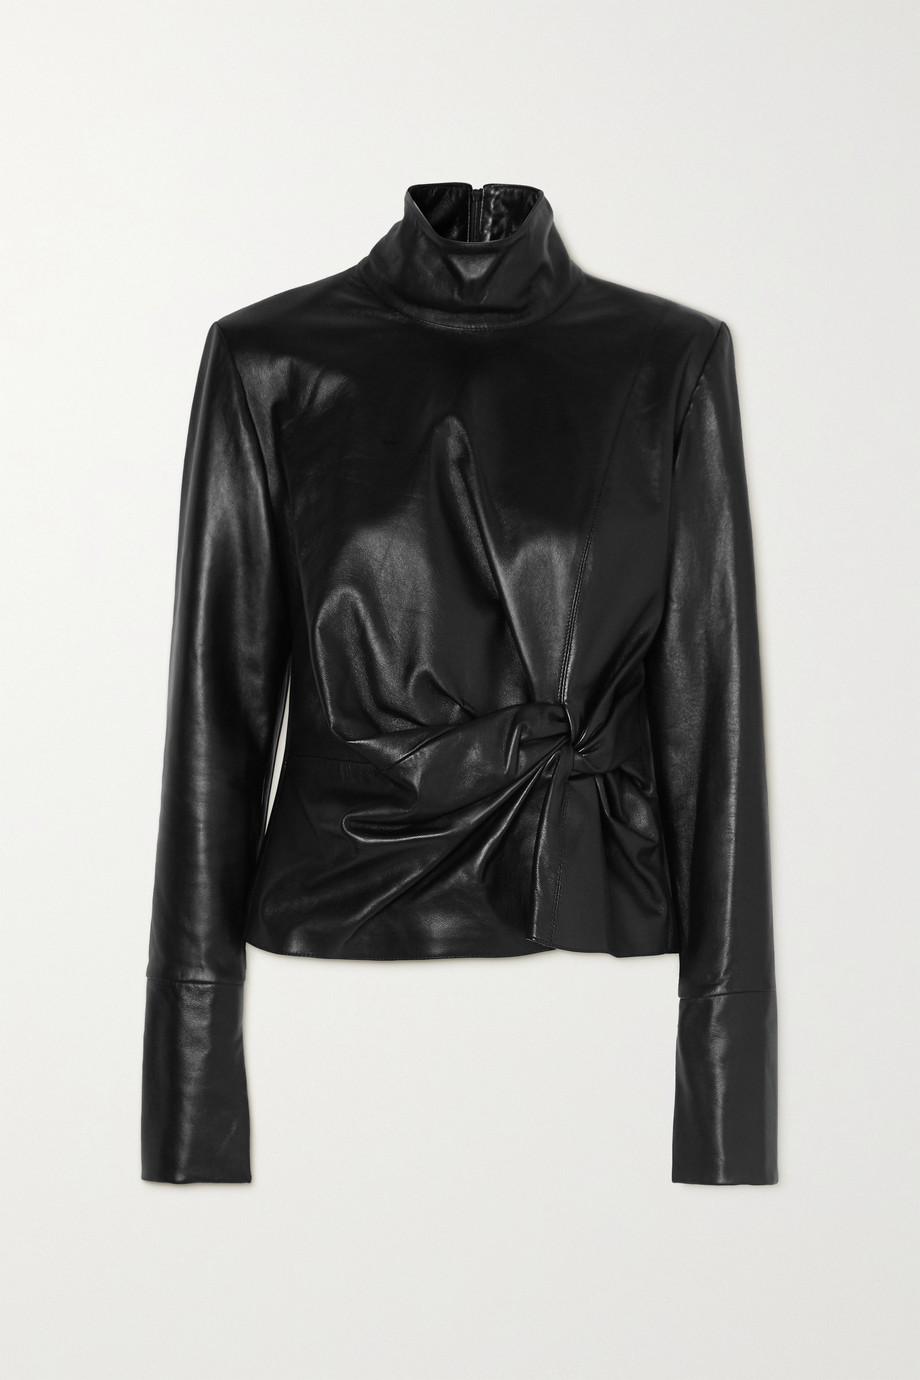 16ARLINGTON Yukie knotted leather top